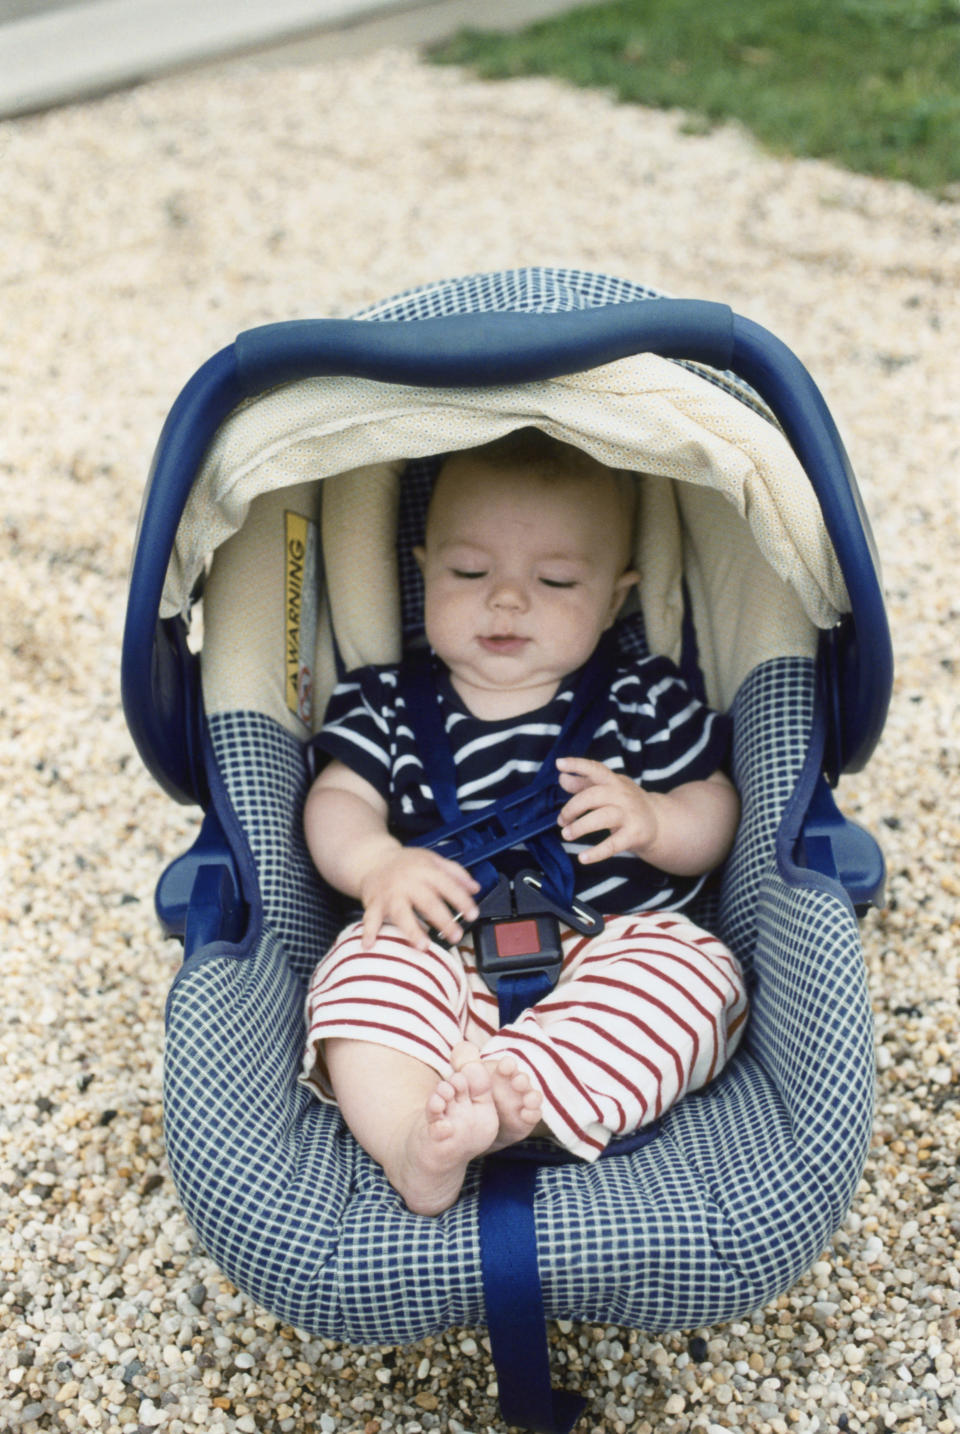 A grief-stricken mother has issued a warning to other parents, not to leave their children in their car seats after her daughter died. [Photo: Getty]